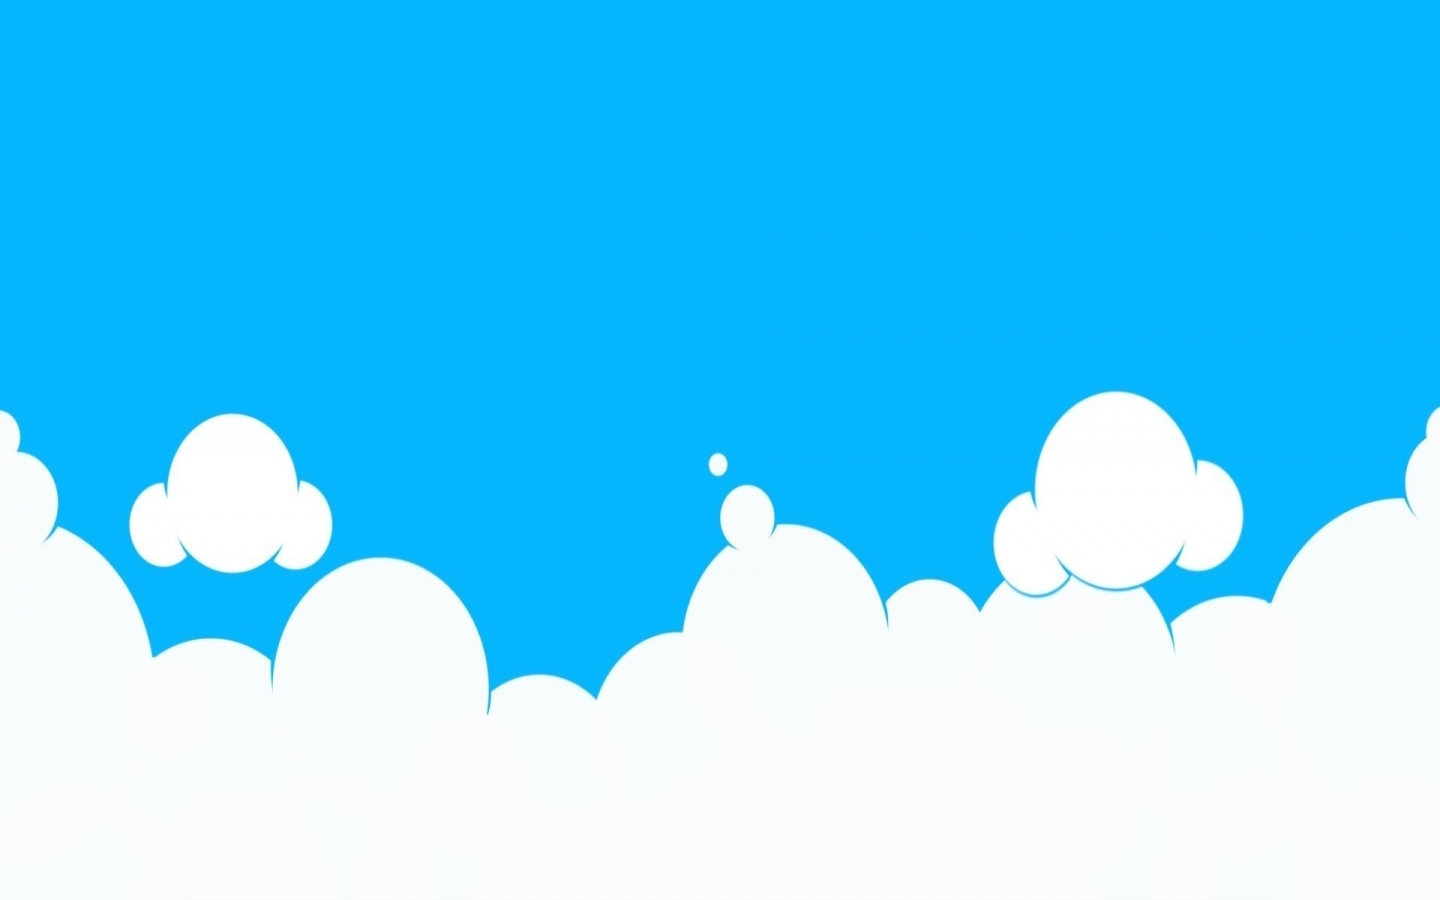 Clouds clipart sky background Moving background Backgrounds Clouds Animated